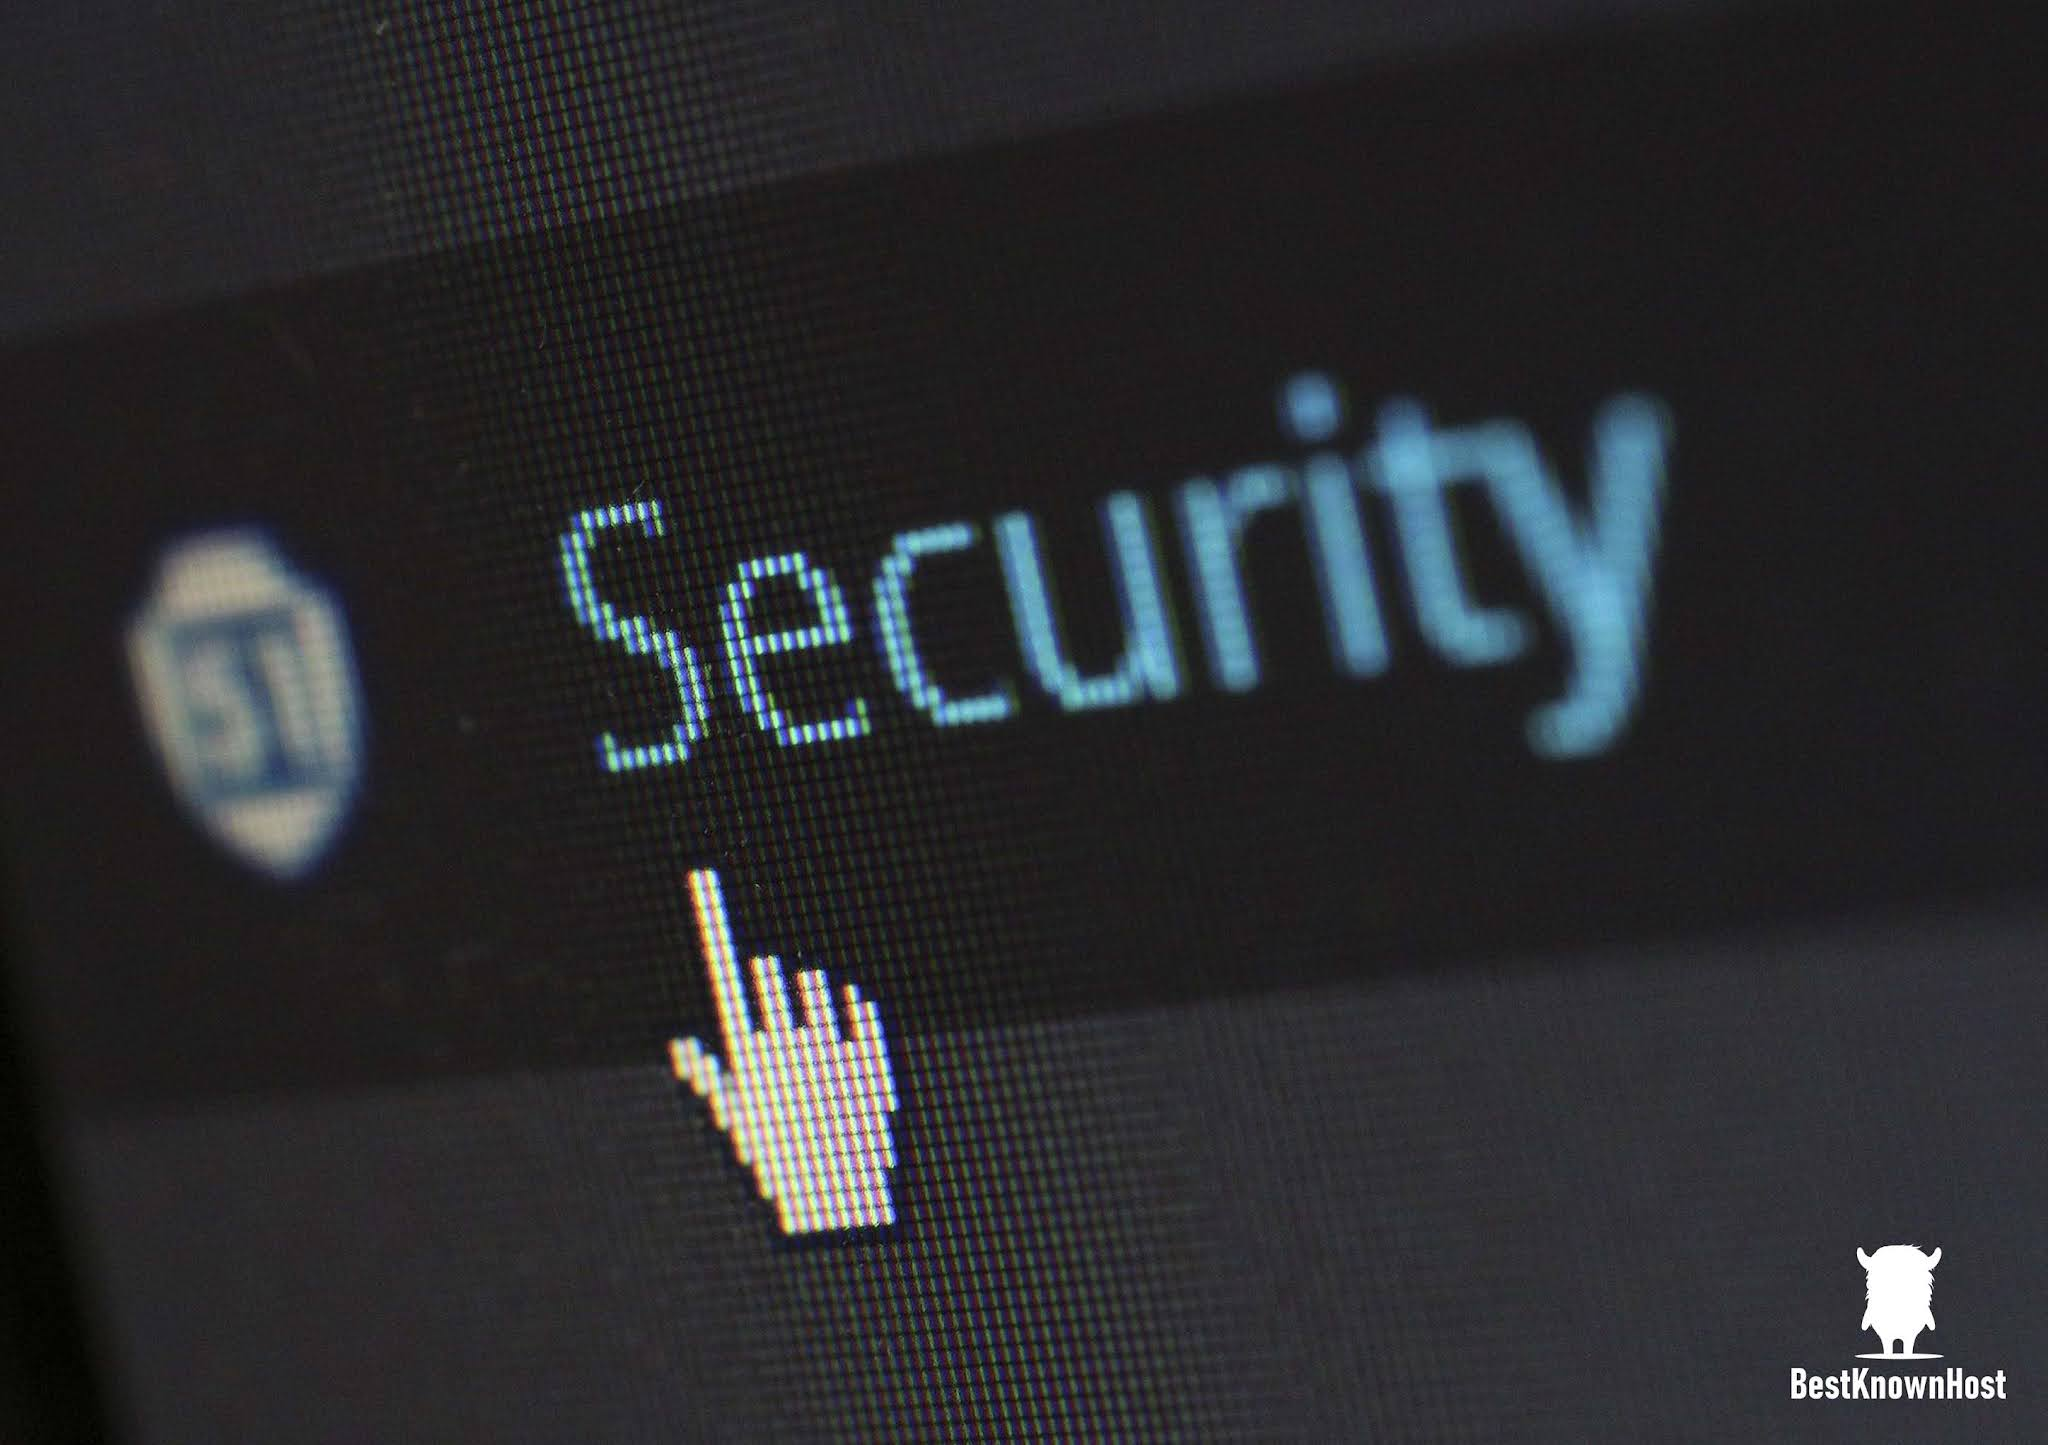 How to Check if Your Website Has Been Hacked